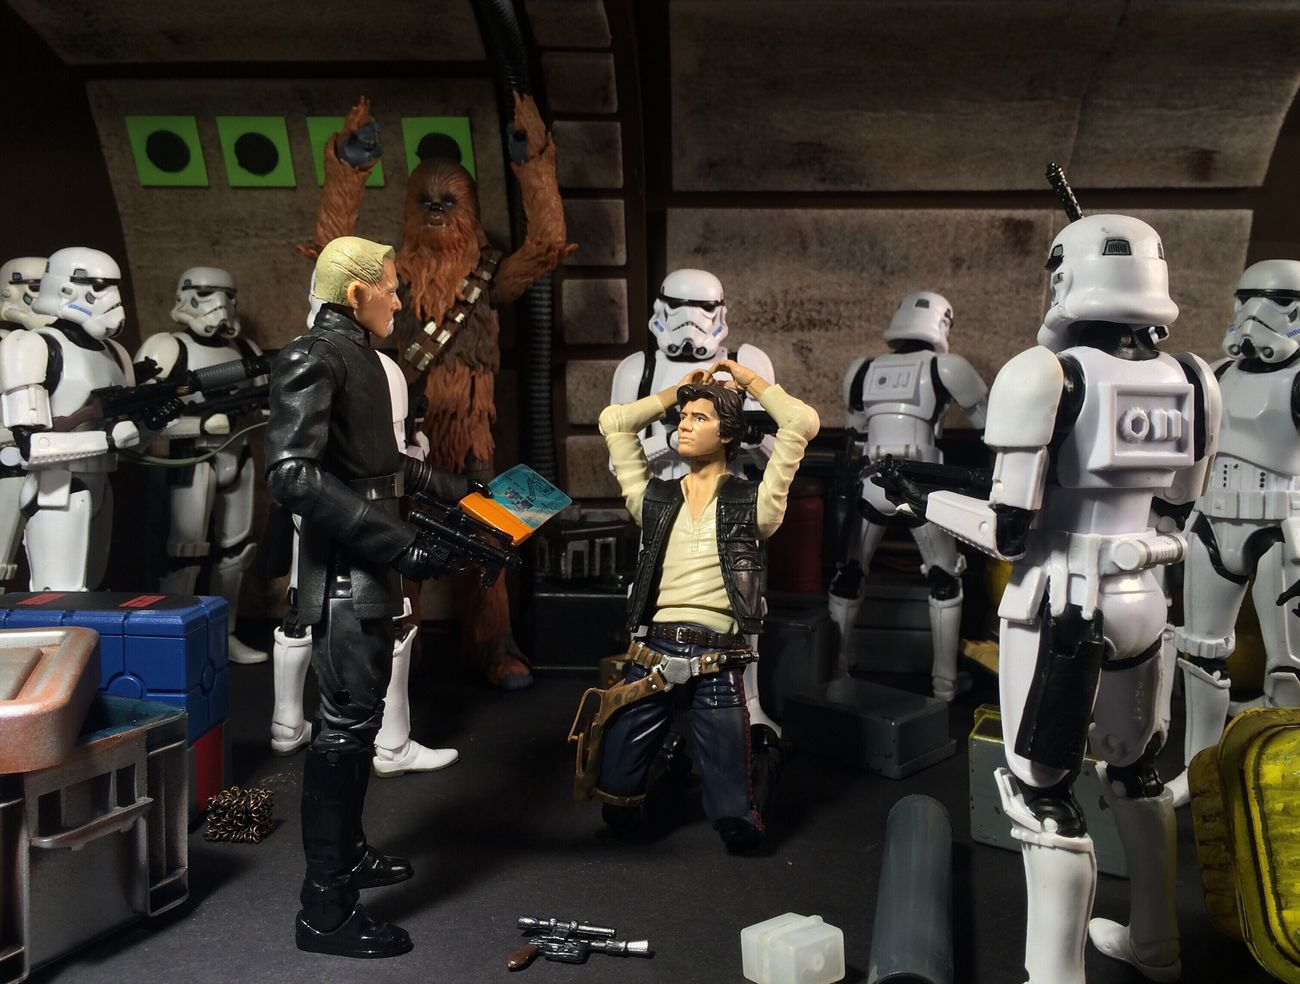 How Jan Solo got into his jam with Jabba the Hutt Chewbacca Action Figures Star Wars The Black Series Custom Star Wars Action Figure Toy Photography Action Figure Photography Star Wars Star Wars Custom Han Solo